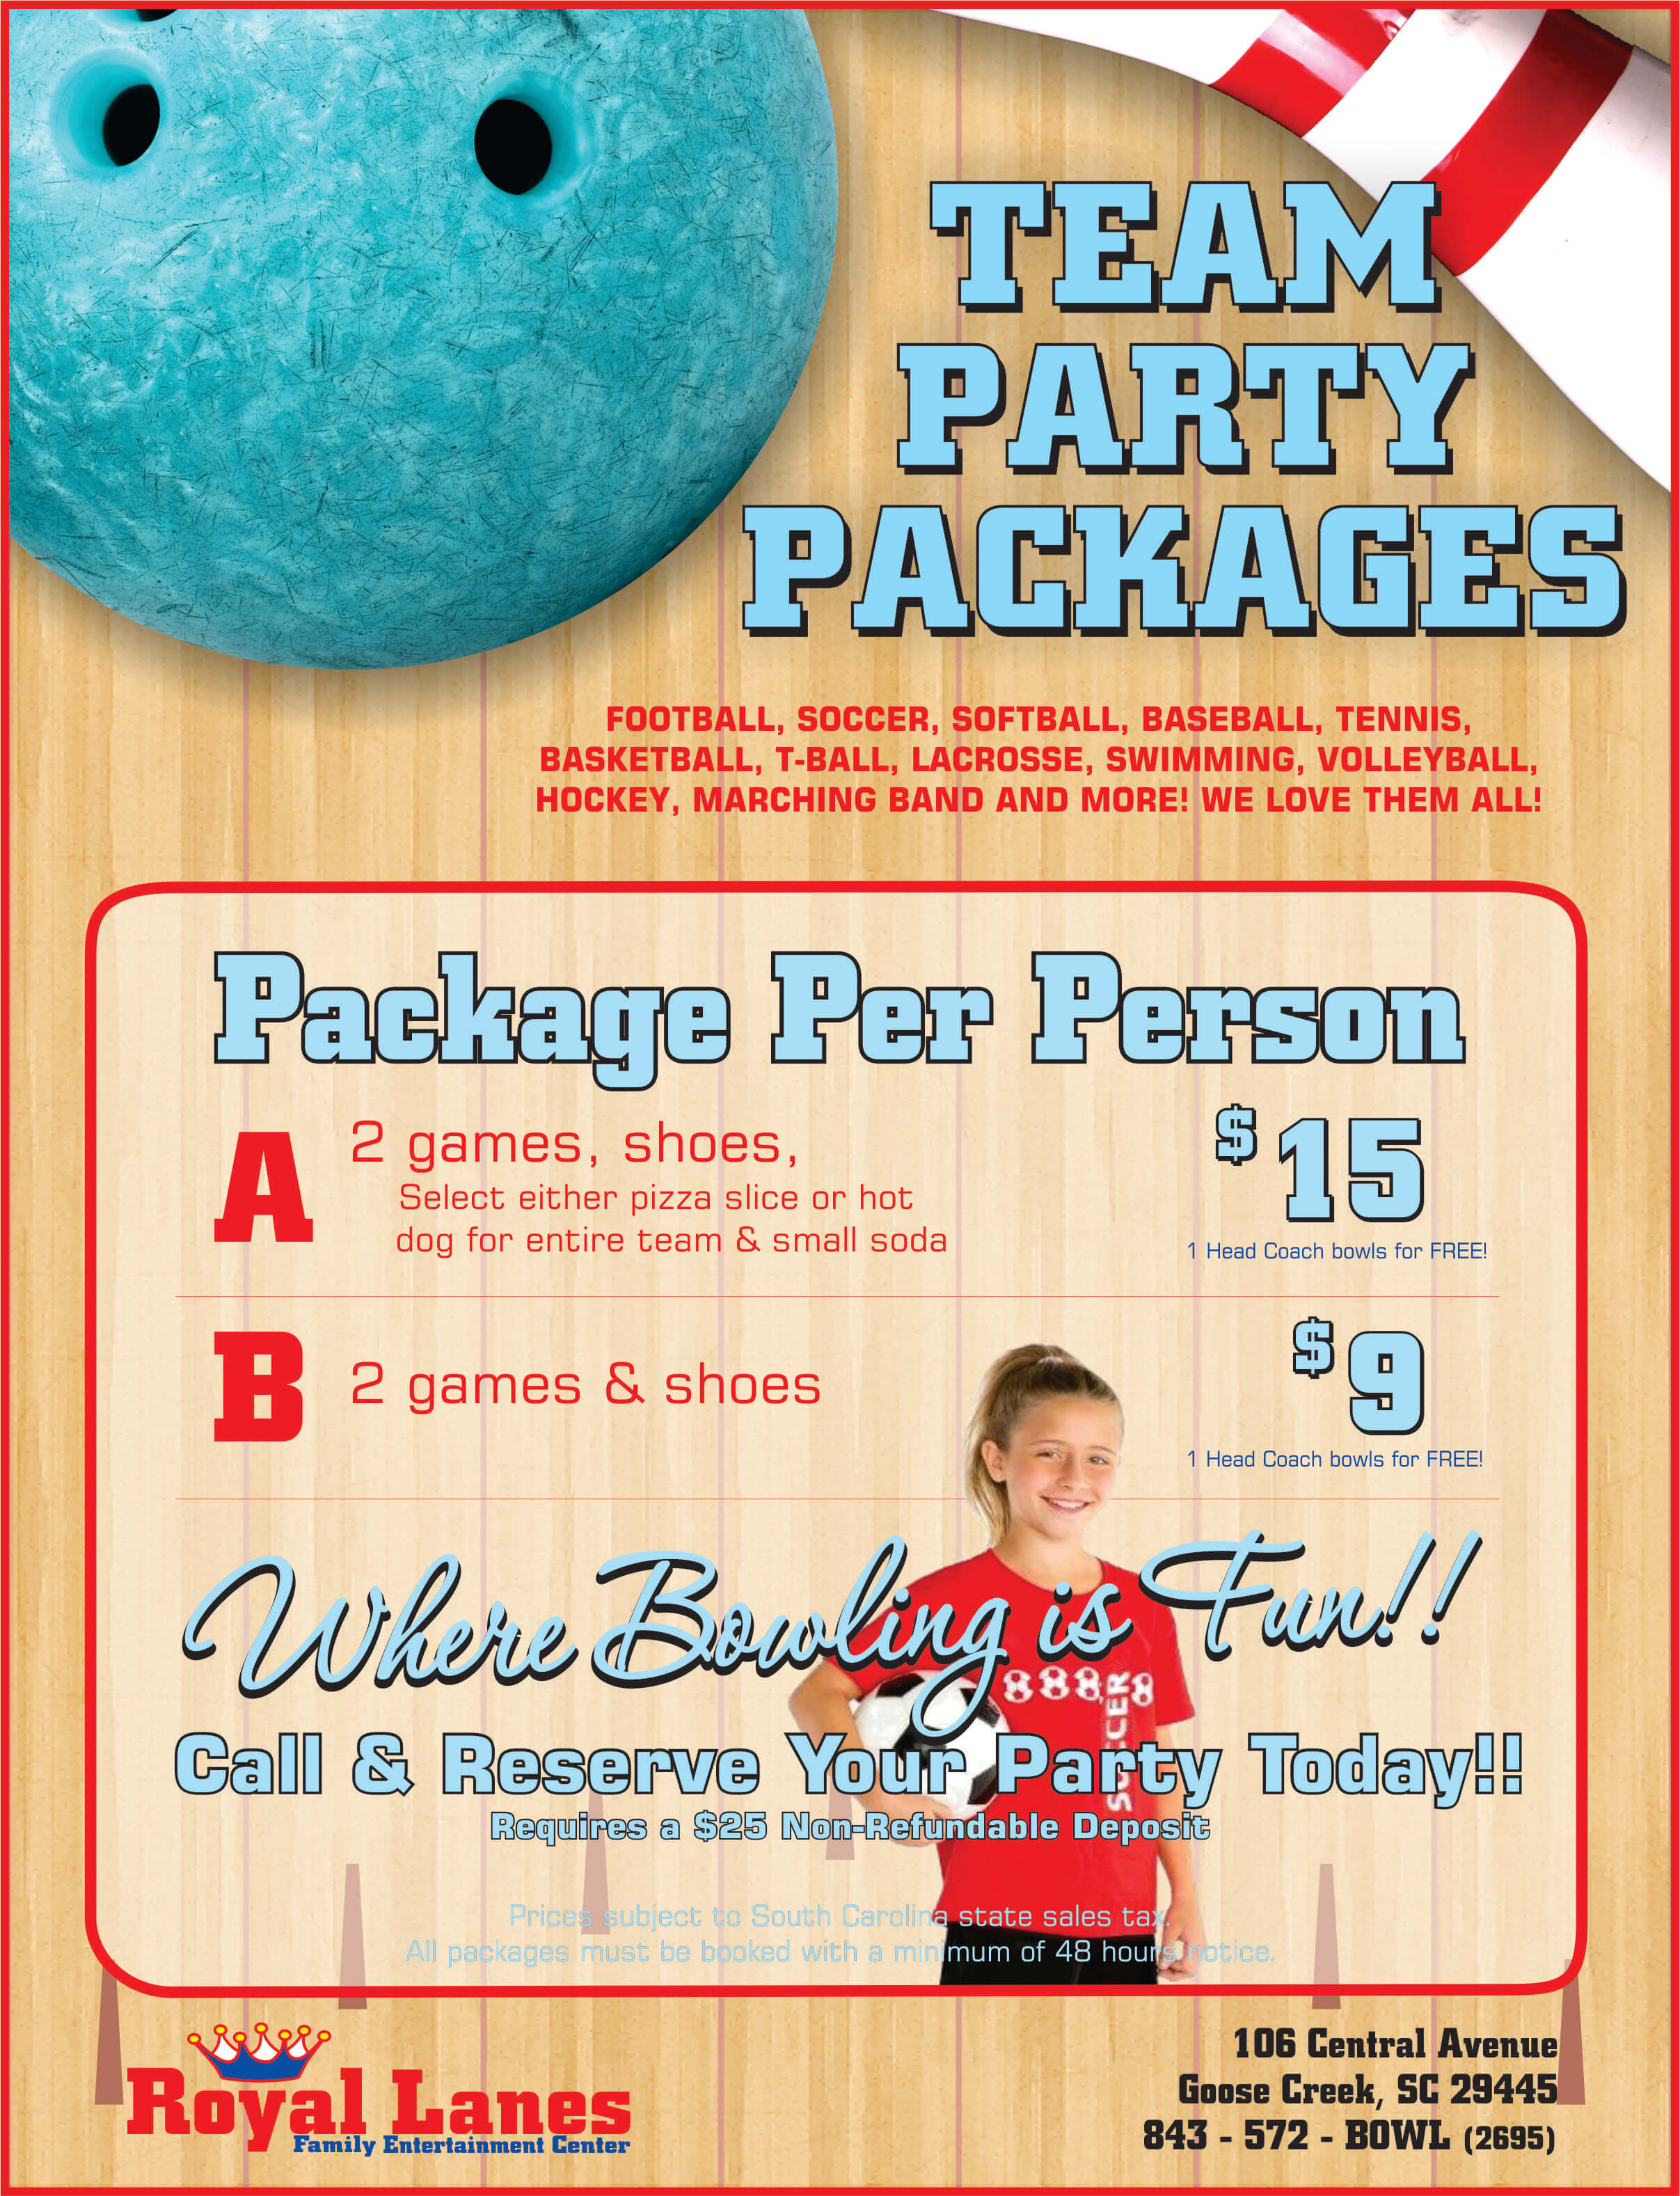 Royal Lanes - Team Packages Flyer.jpg